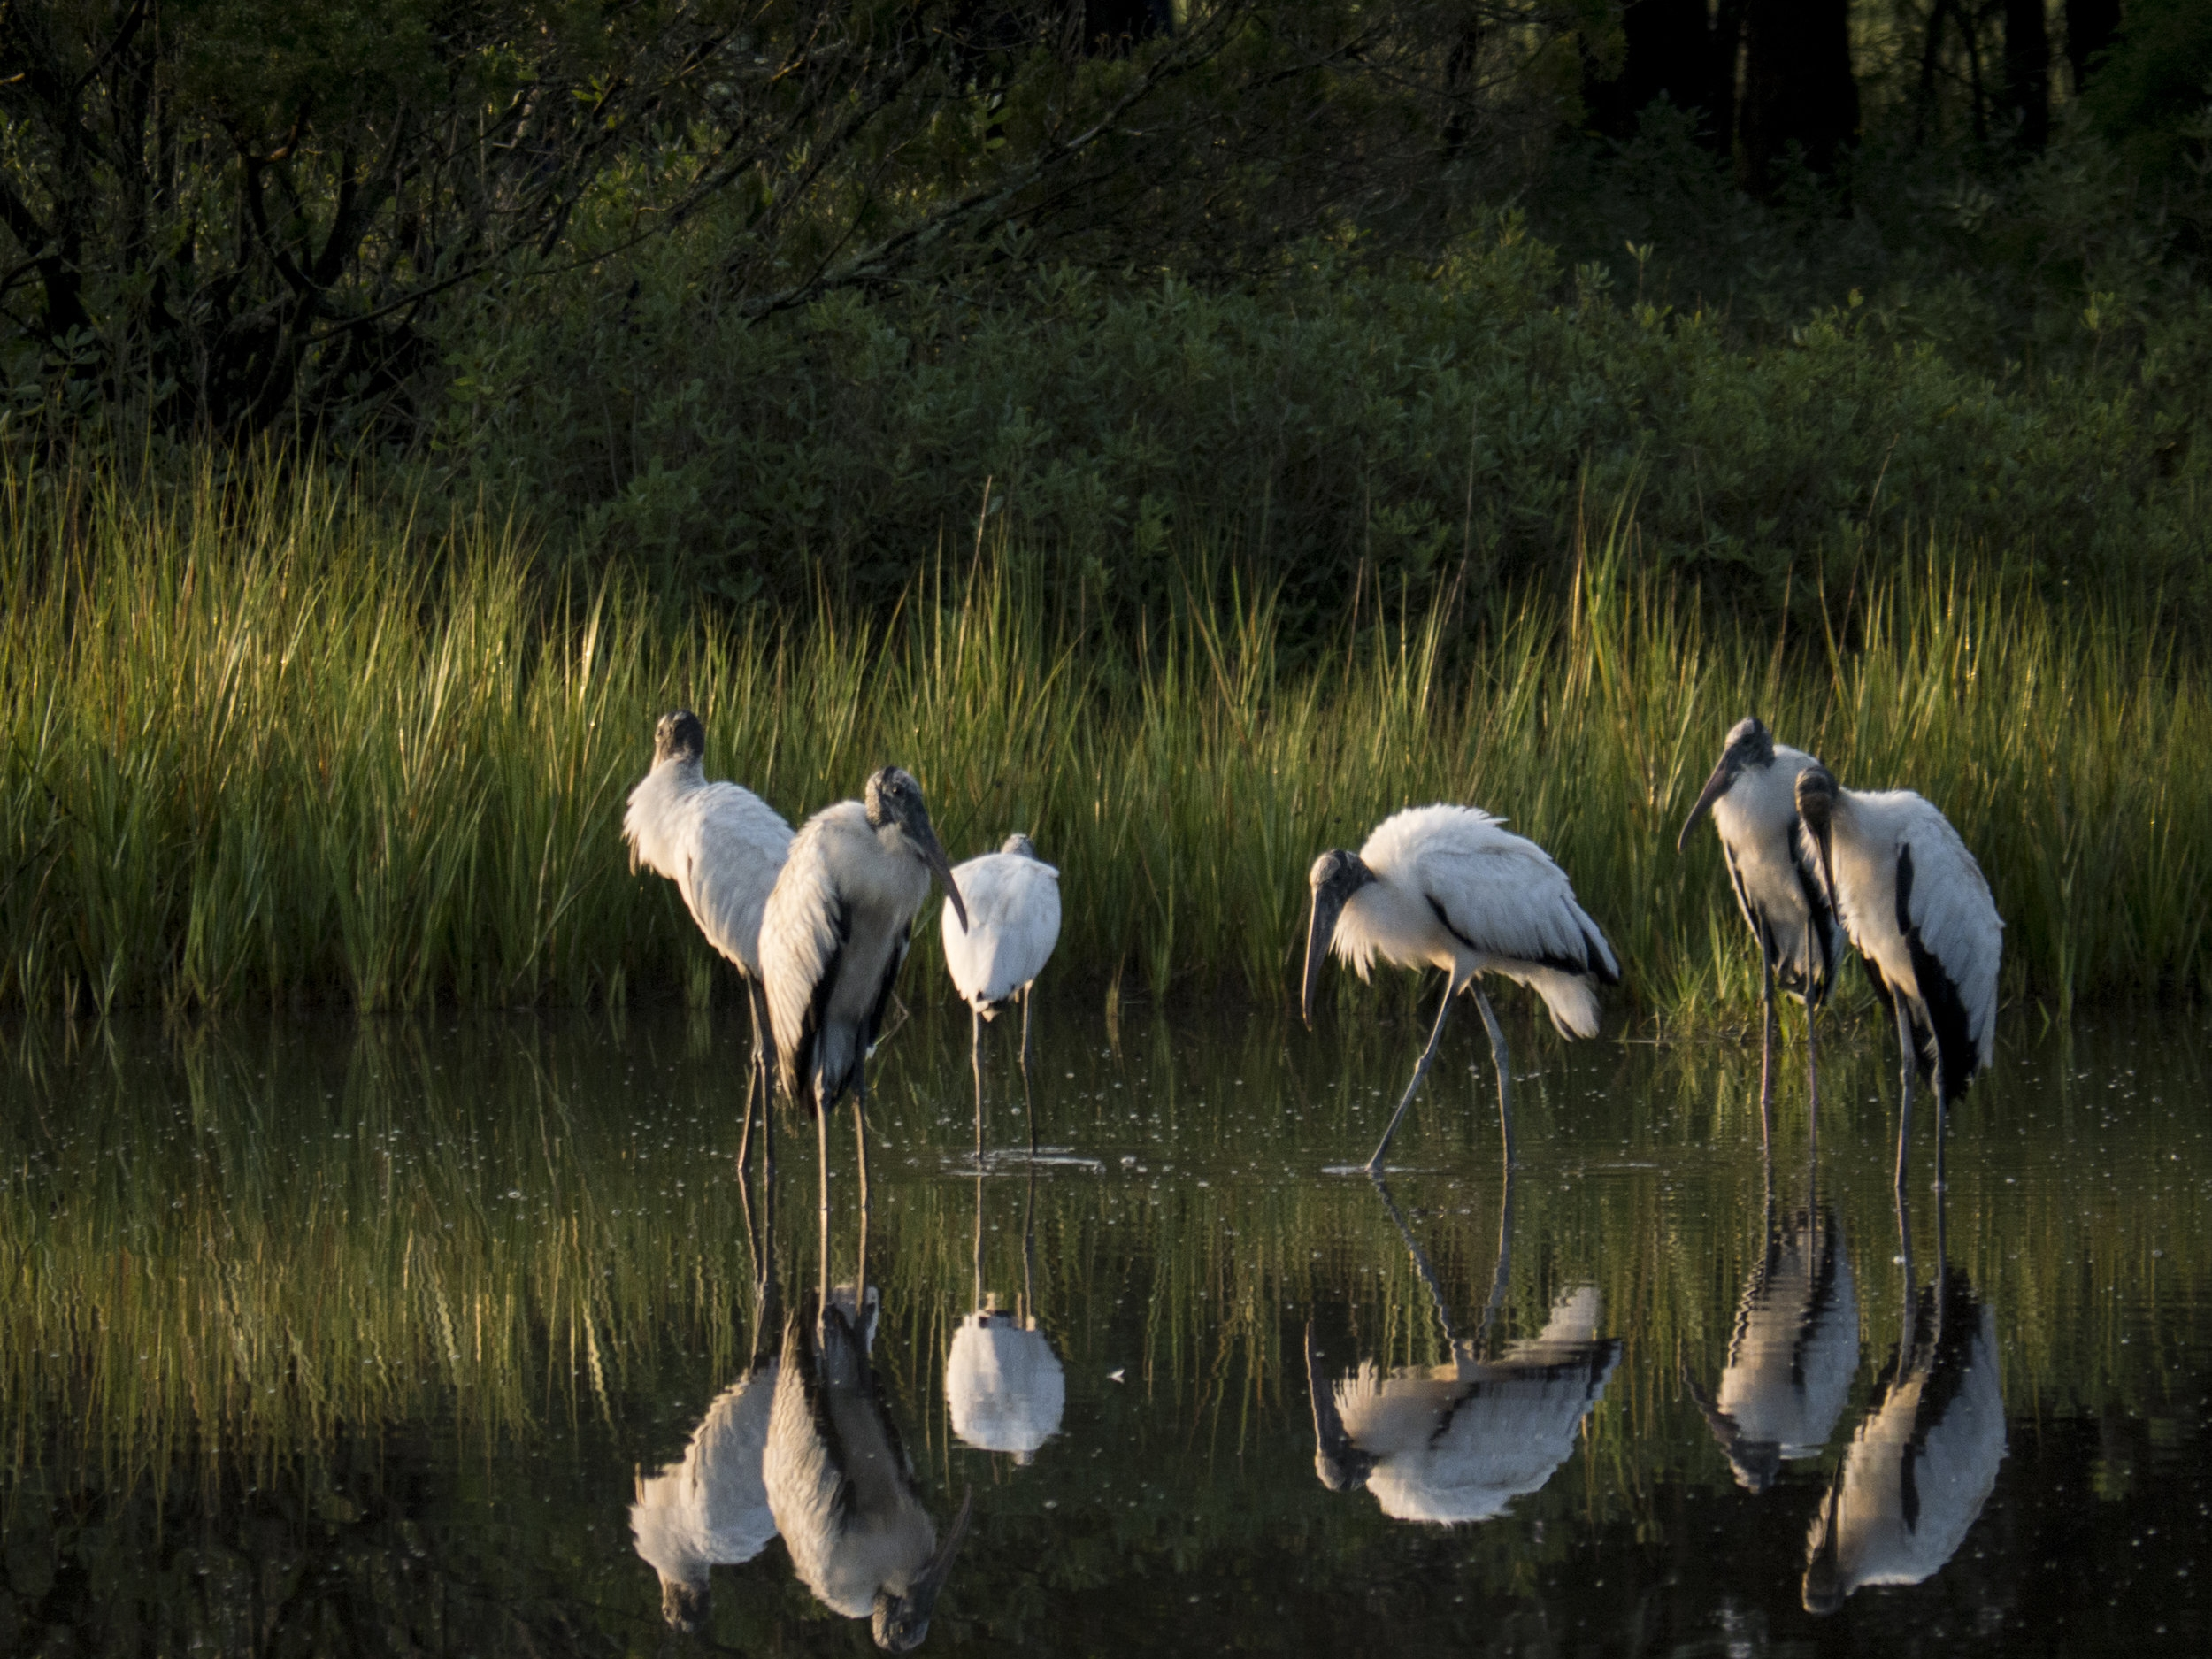 Woodstorks gathering in the early morning